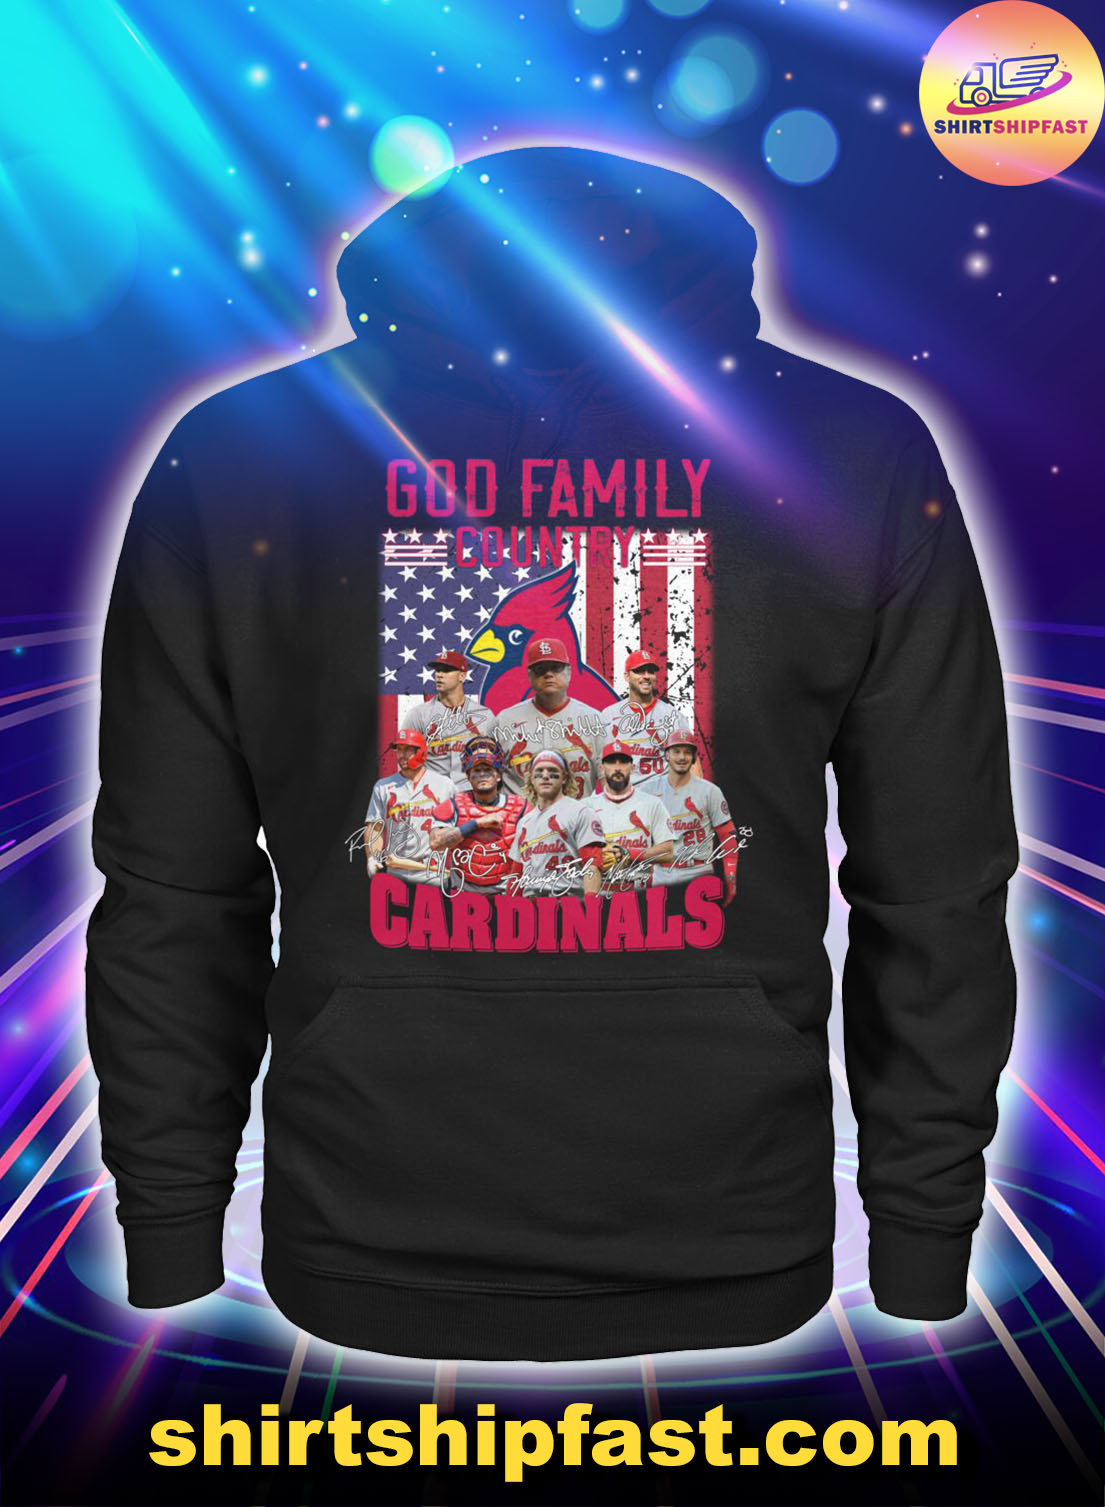 God-family-country-St.-Louis-Cardinals-American-flag-shirt - 2